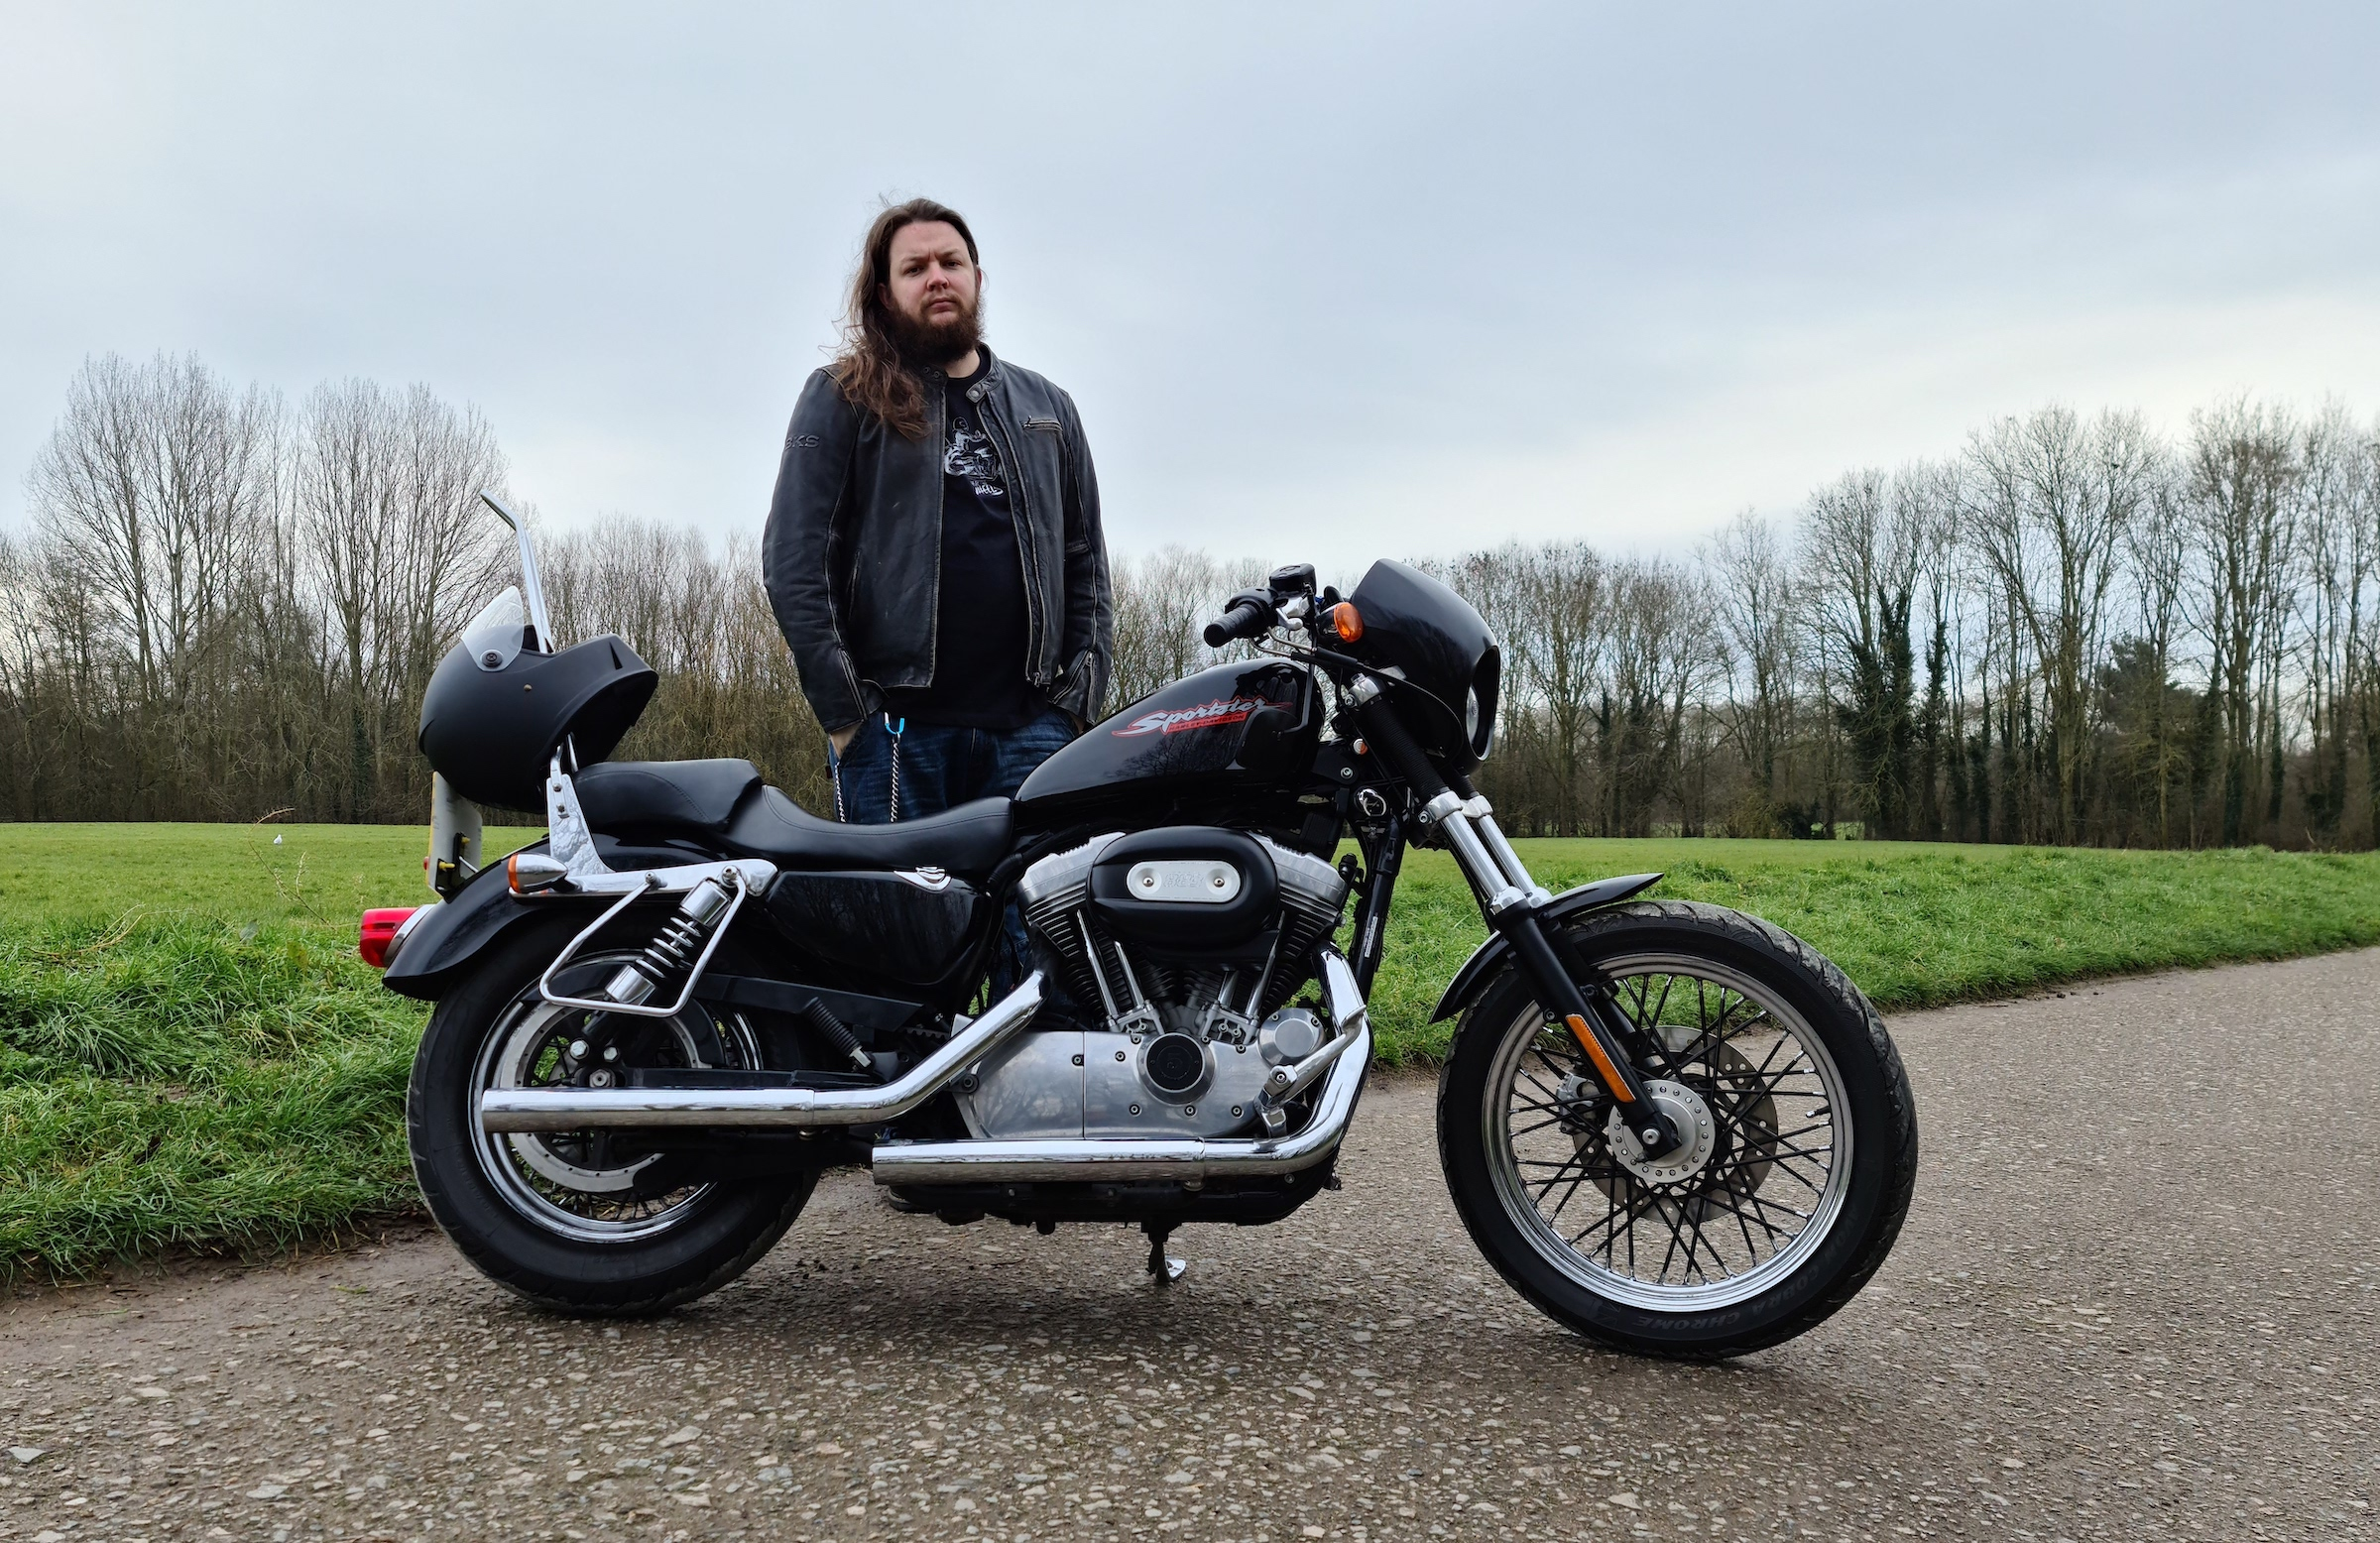 Our classics: 2005 Harley-Davidson XLH 883